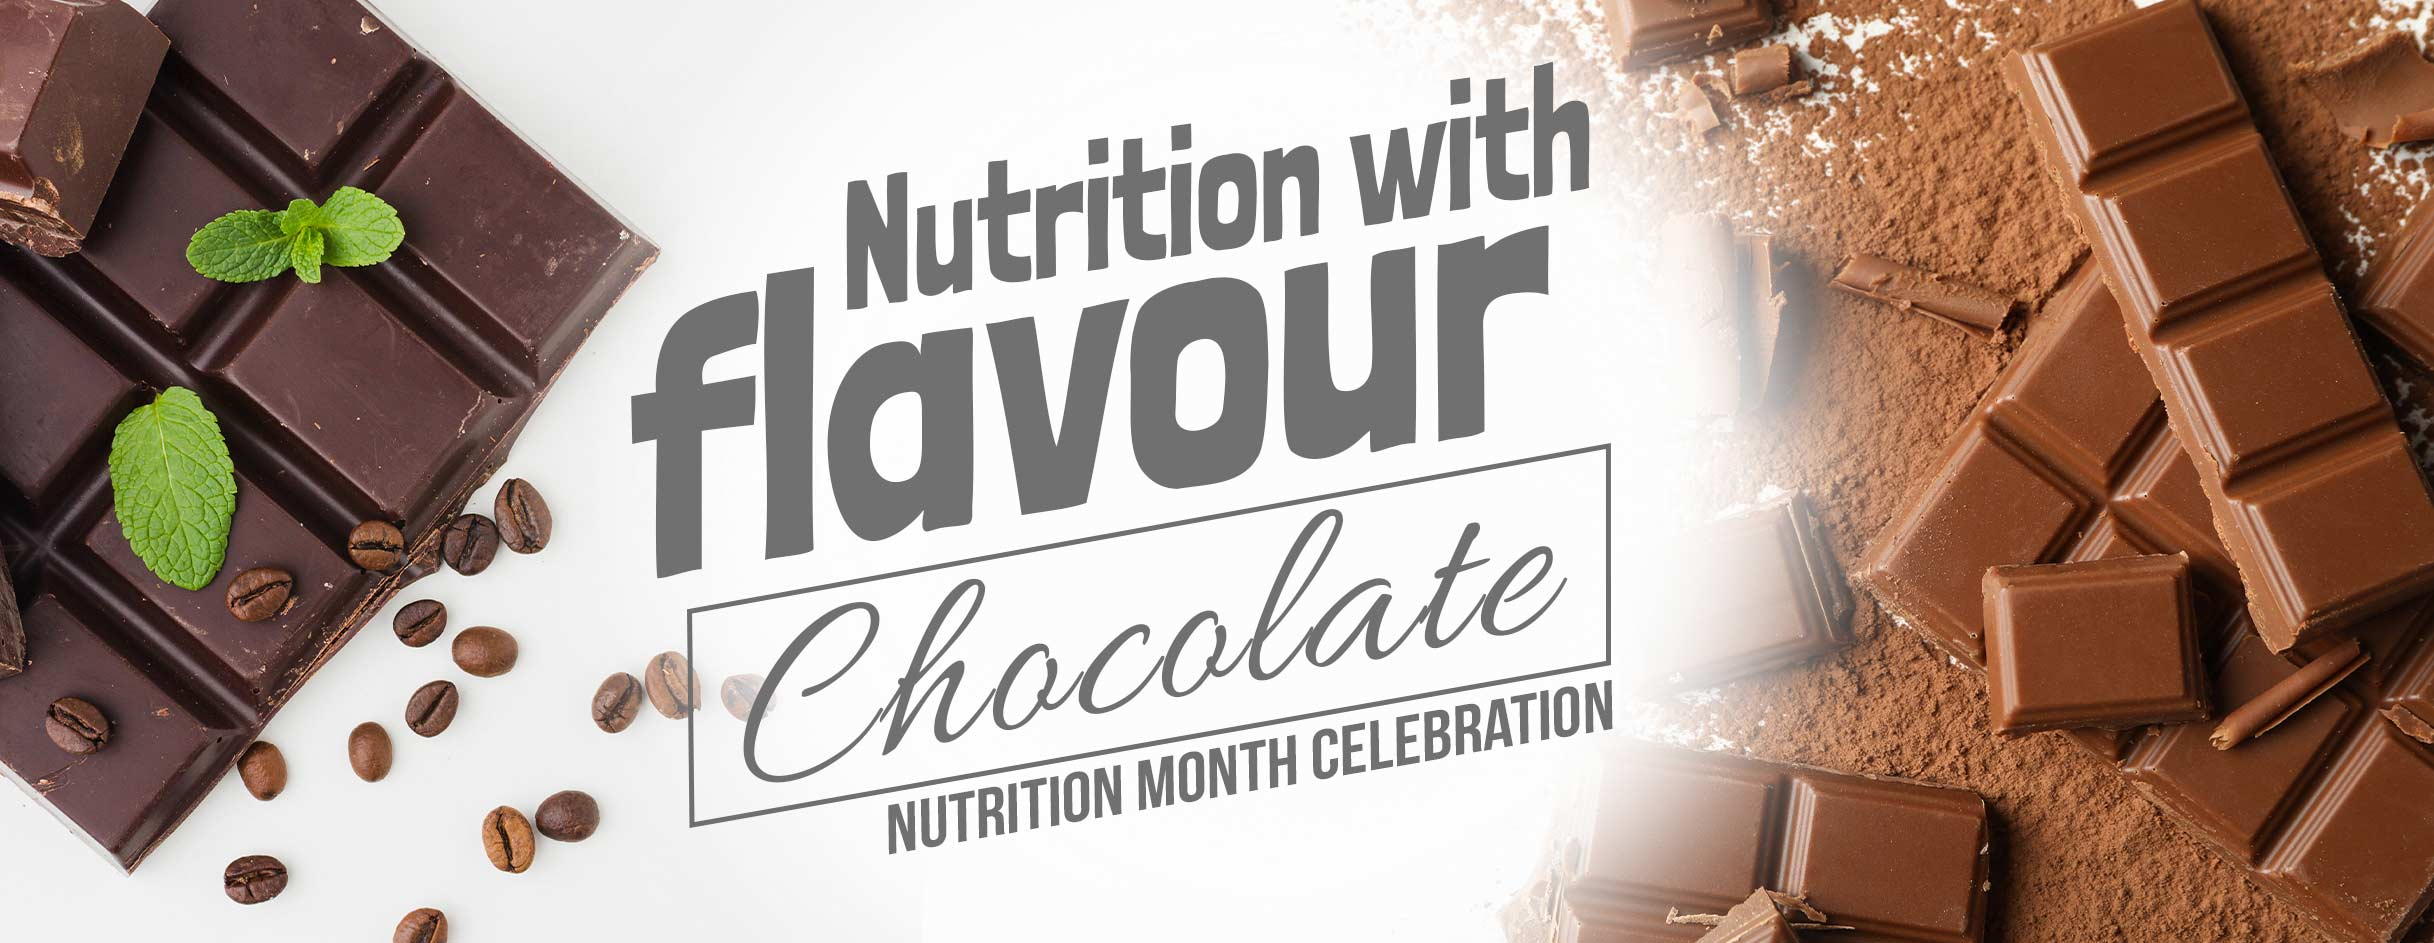 Nutrition With Chocolate Flavour